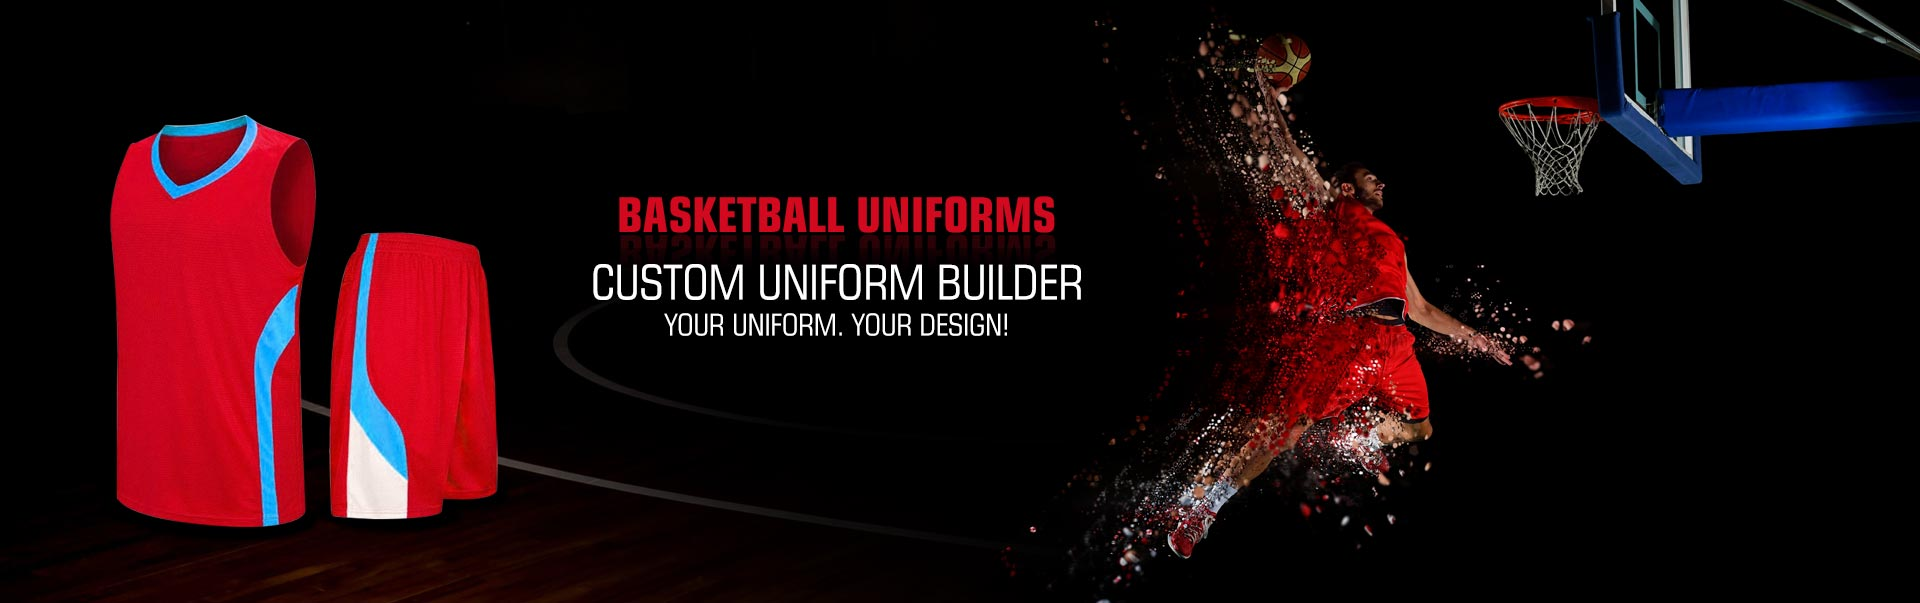 Basketball Uniforms Wholesaler, Suppliers in Aurora